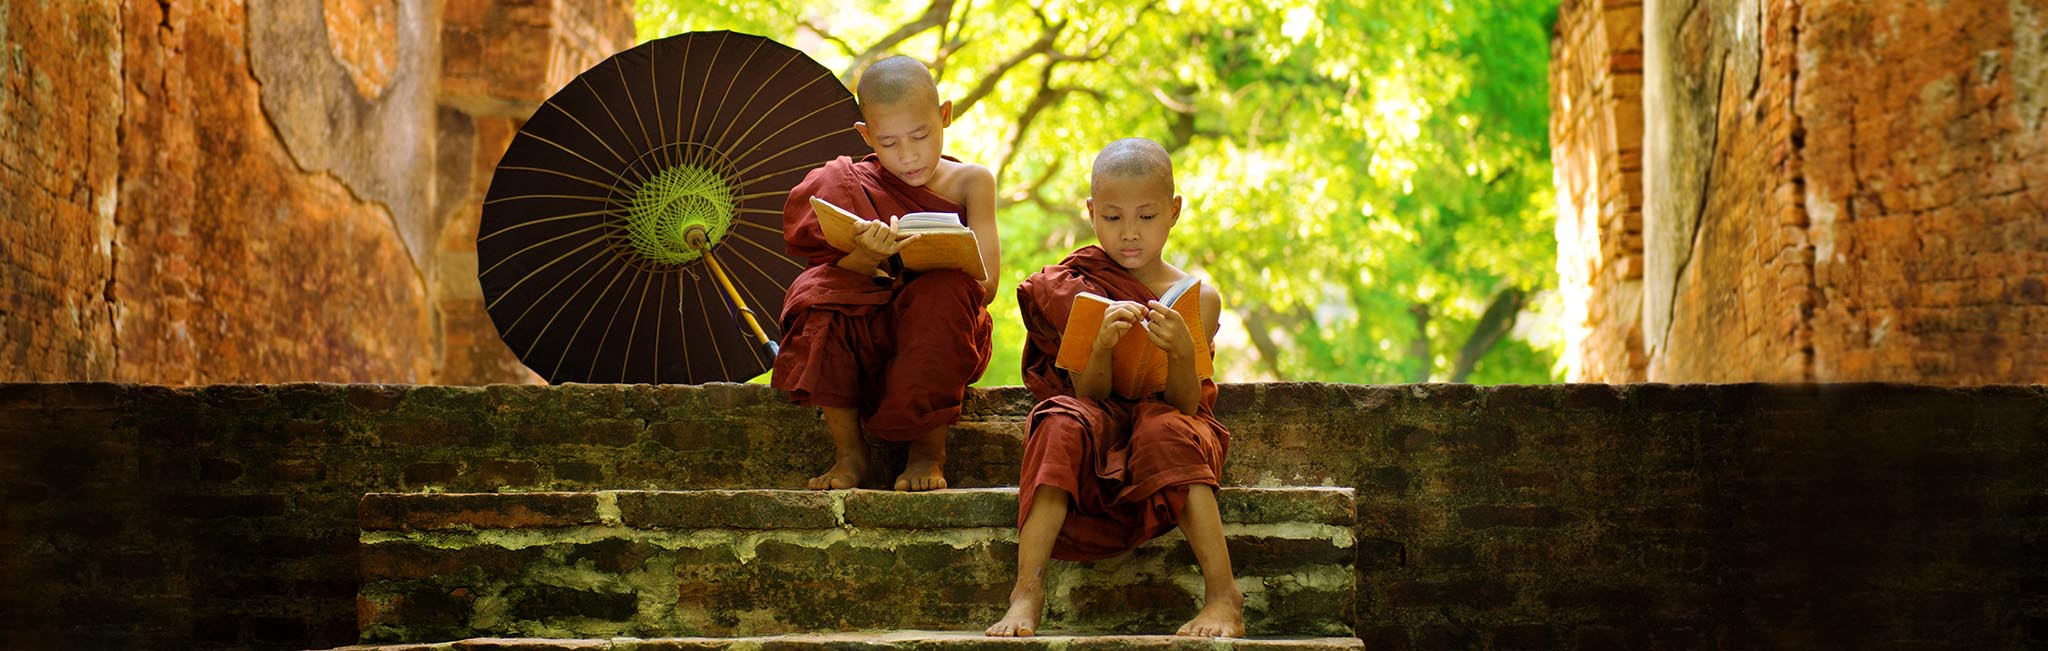 Luxury Tours - Young Buddhist monks reading on landing